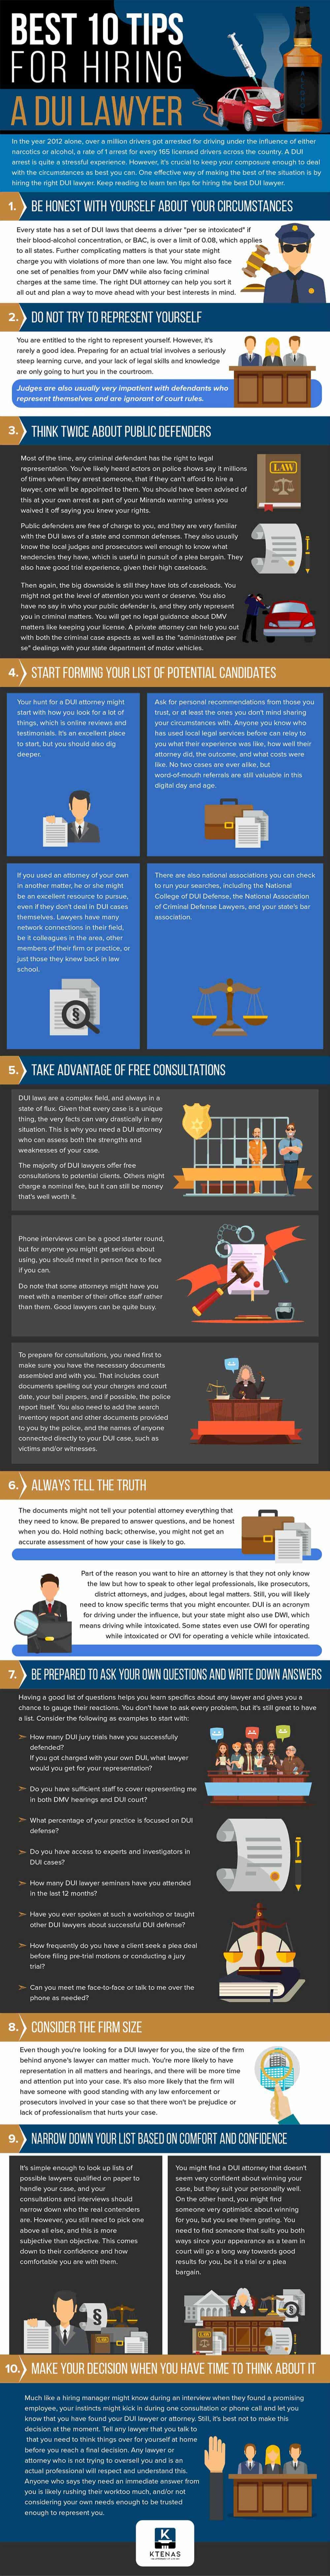 10 Tips for Hiring a DUI Lawyer - Infographic